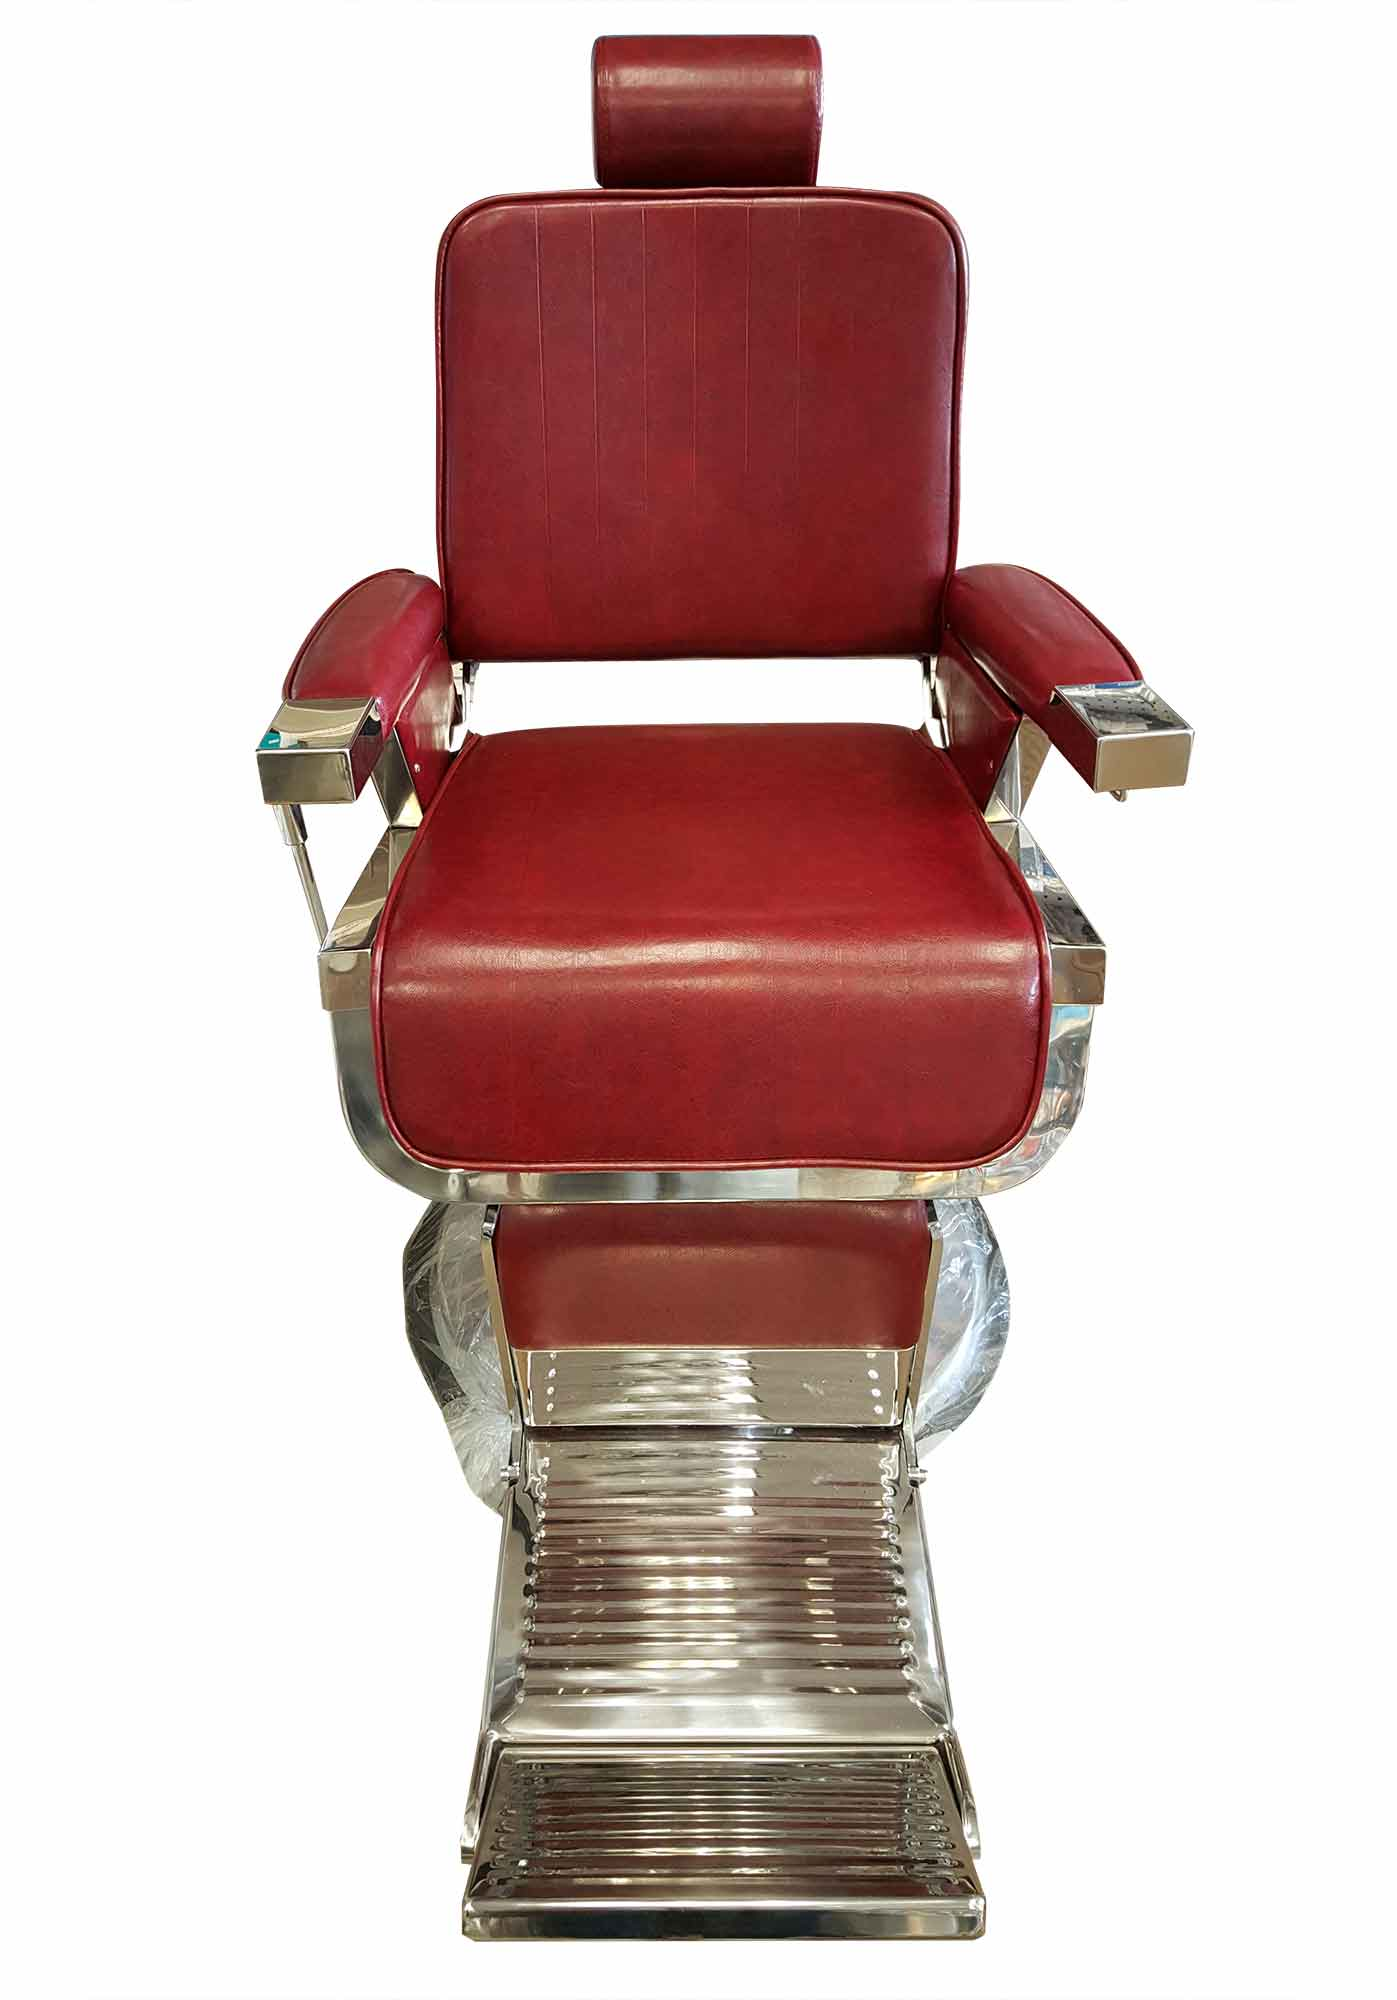 Red Barber Chair Hydraulic Barber Chair Xz 31819